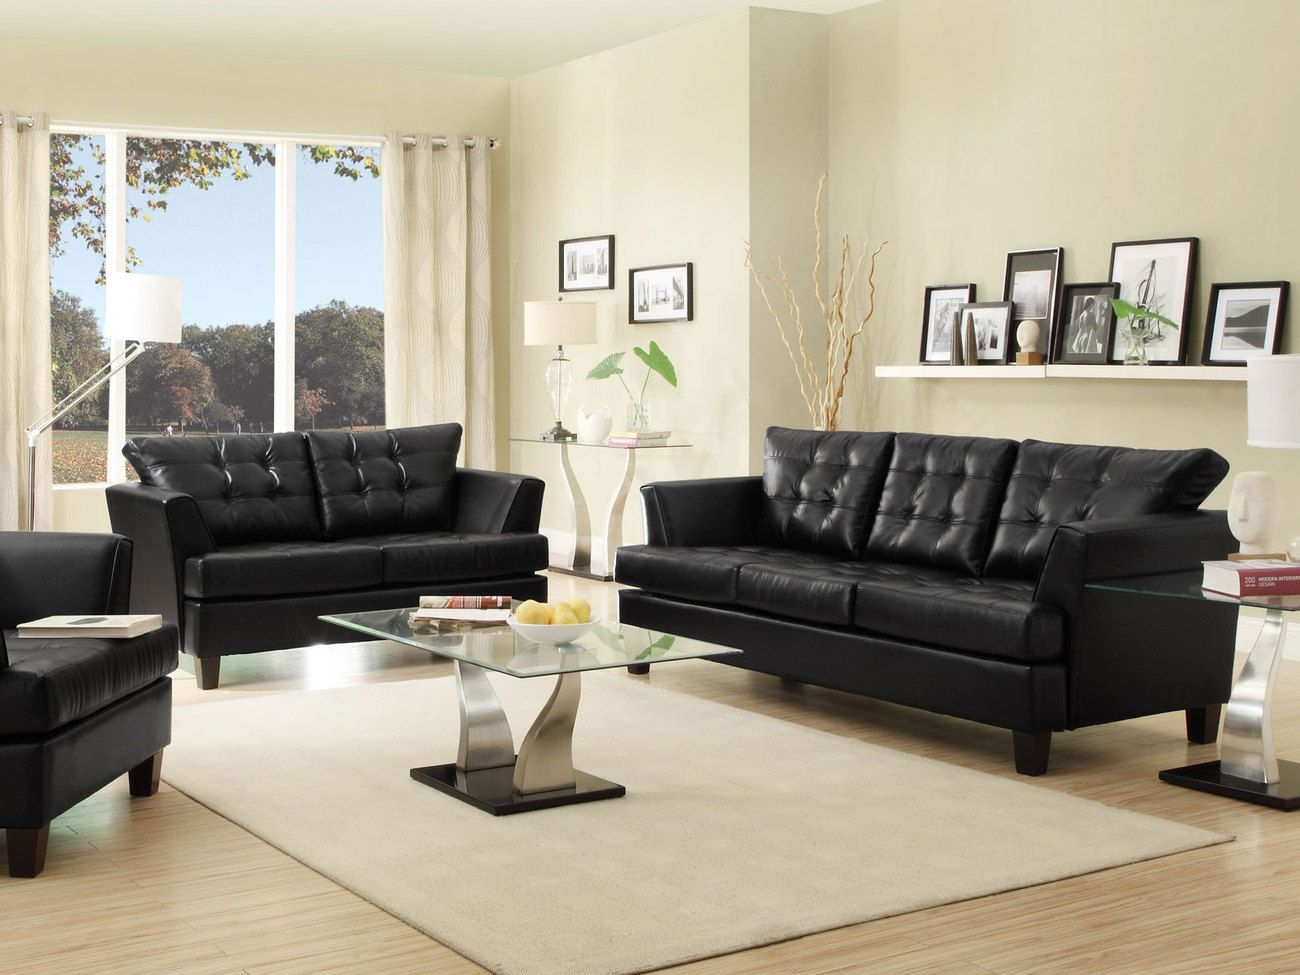 Living Room Design With Black Leather Sofa Gorgeous Living Room Decor With Black Leather Couches  Httptmidb Decorating Inspiration